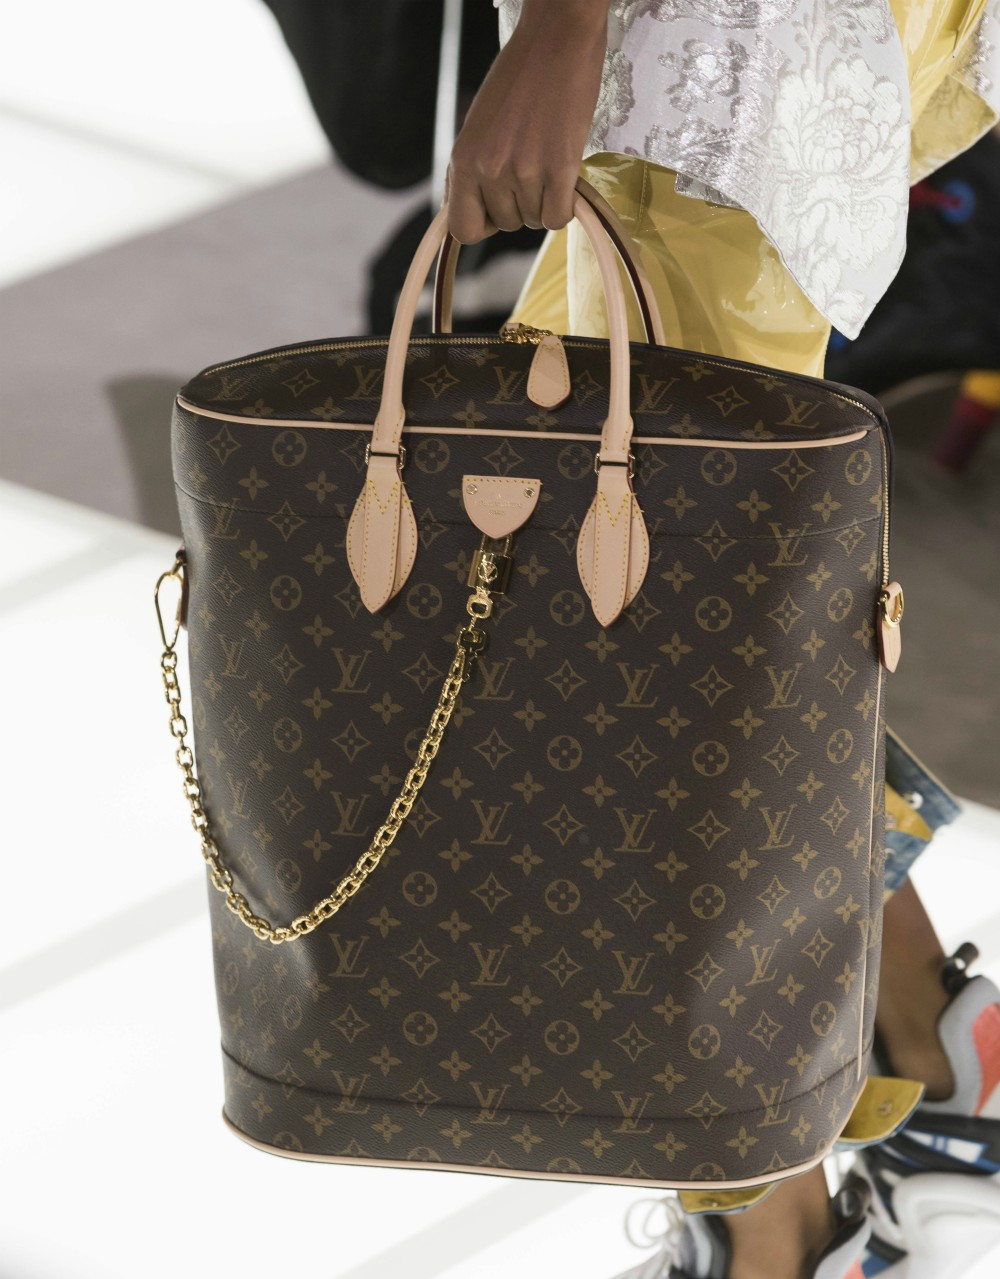 Data from fashion intelligence platform Edited shows that luxury labels are raising prices on handbags to try to recoup this year's losses.